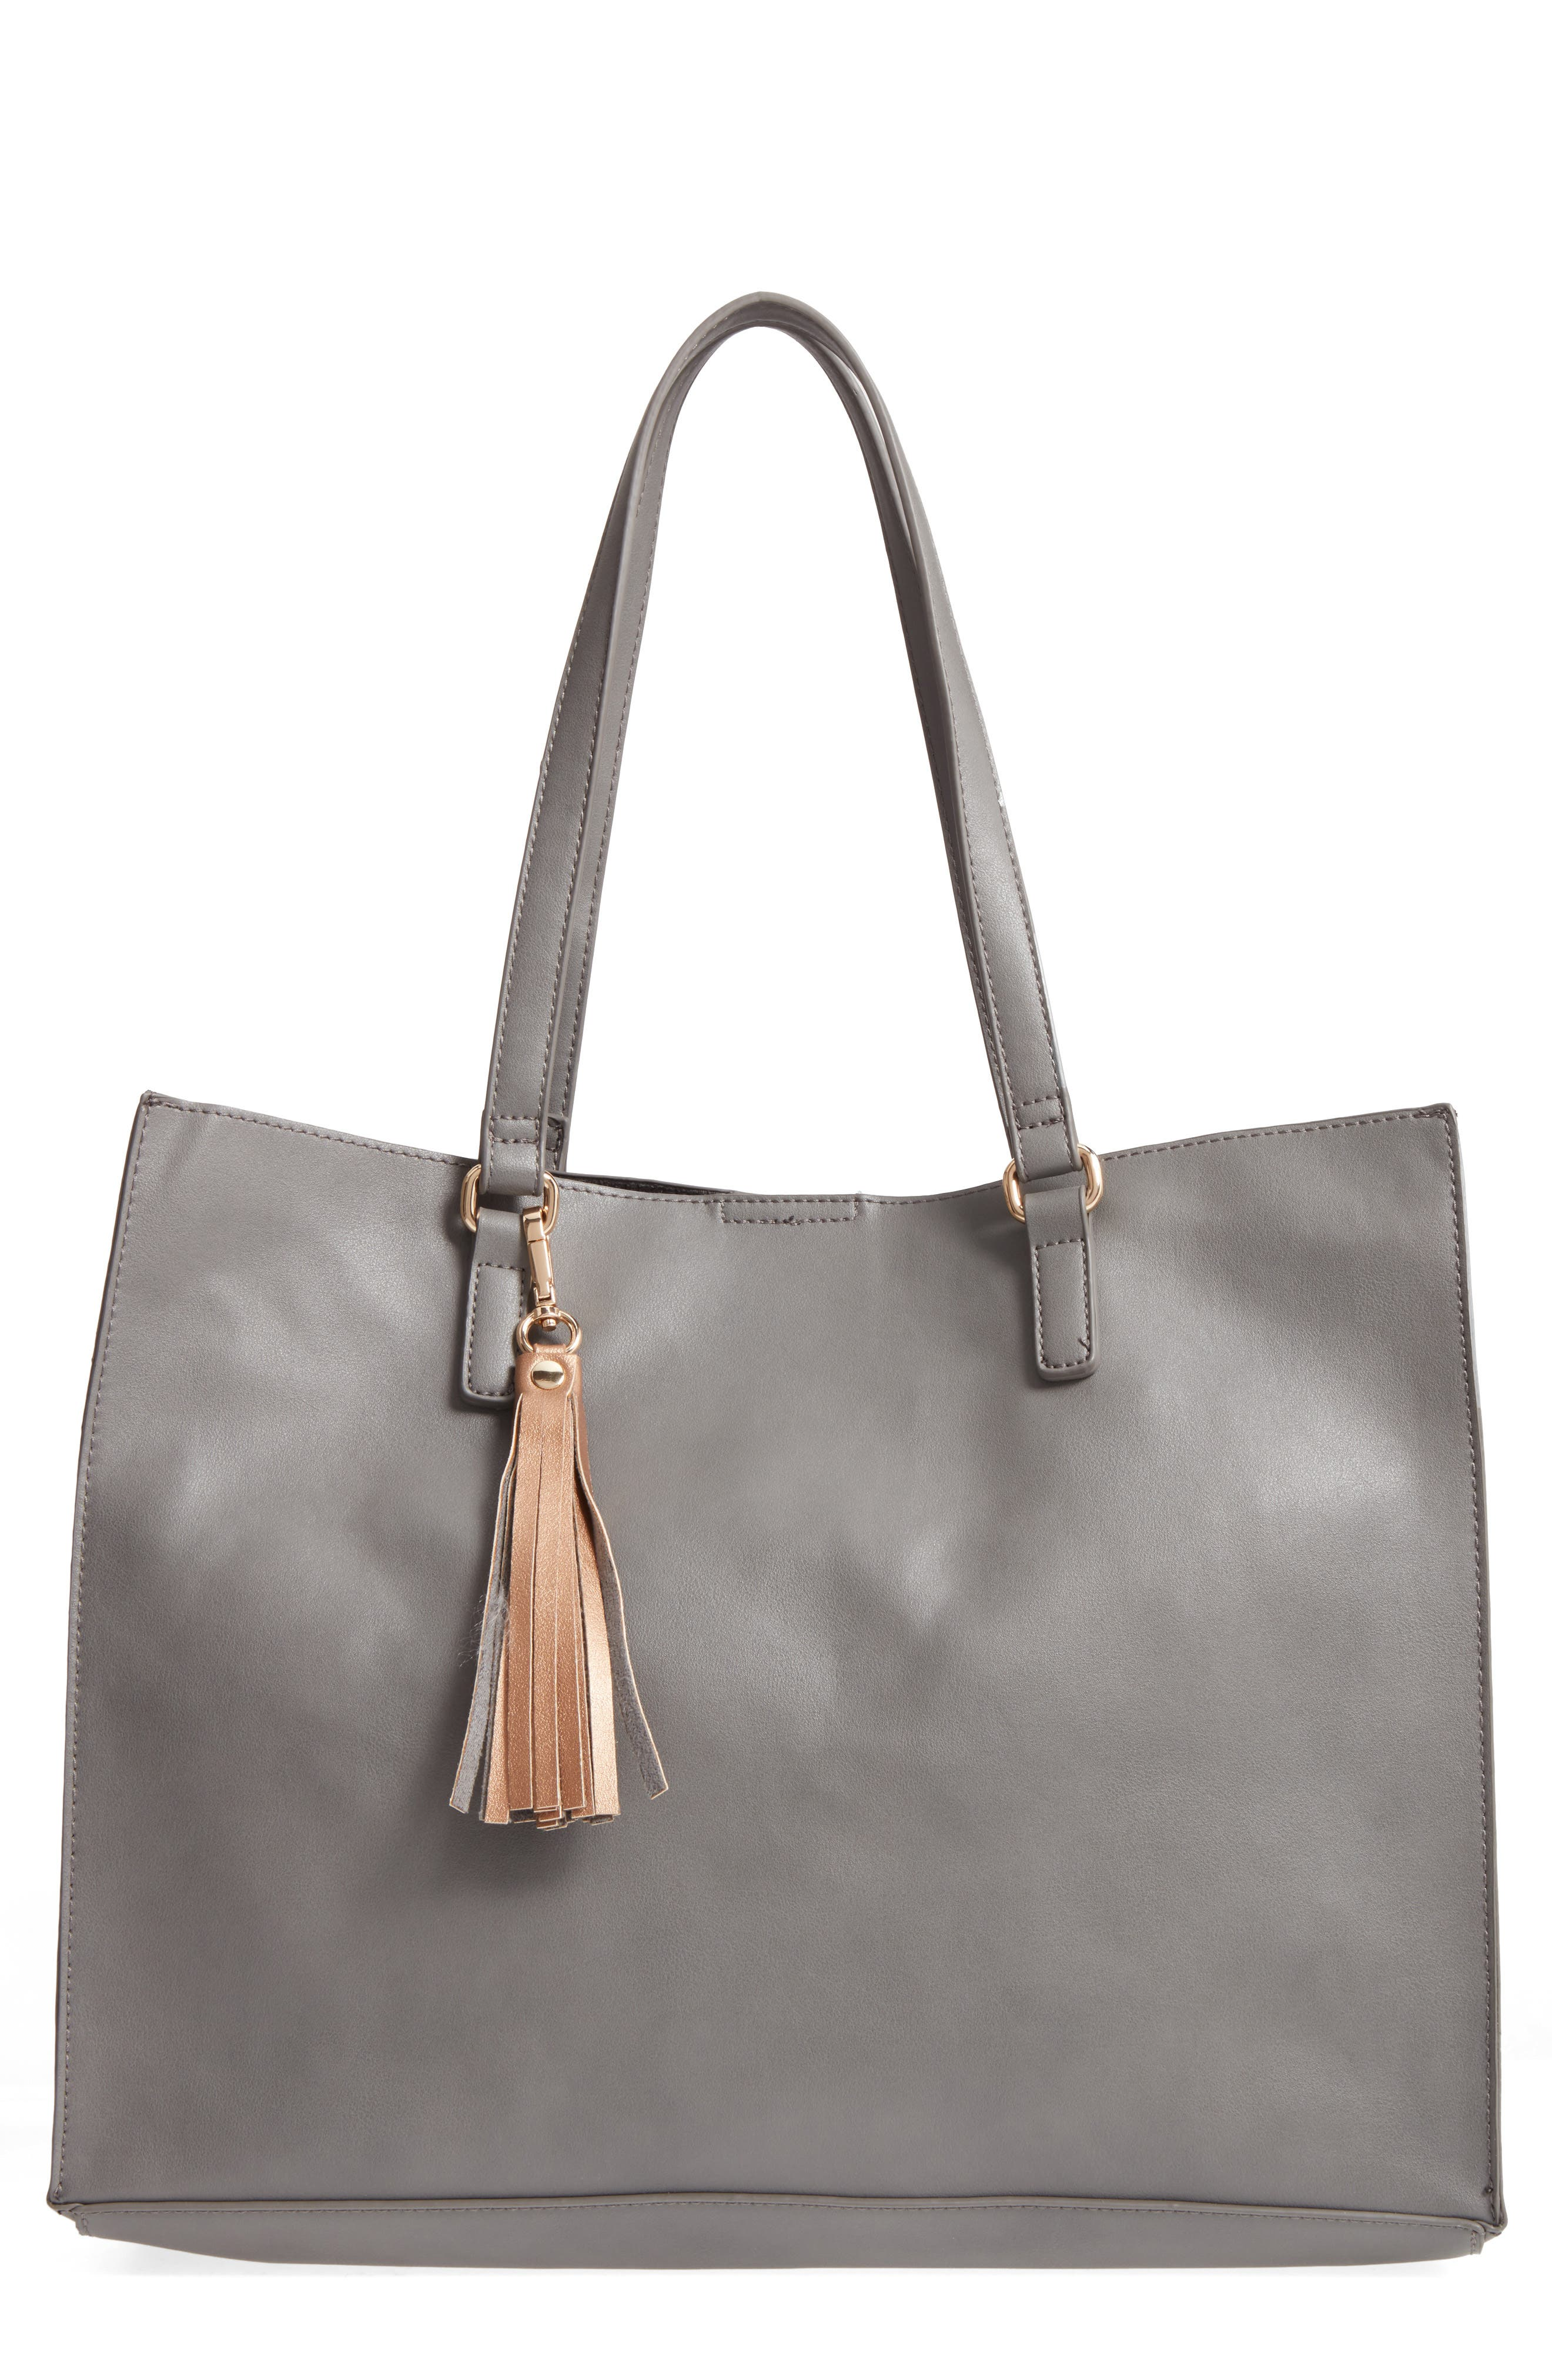 Alternate Image 1 Selected - BP. Faux Leather Tote & Pouch